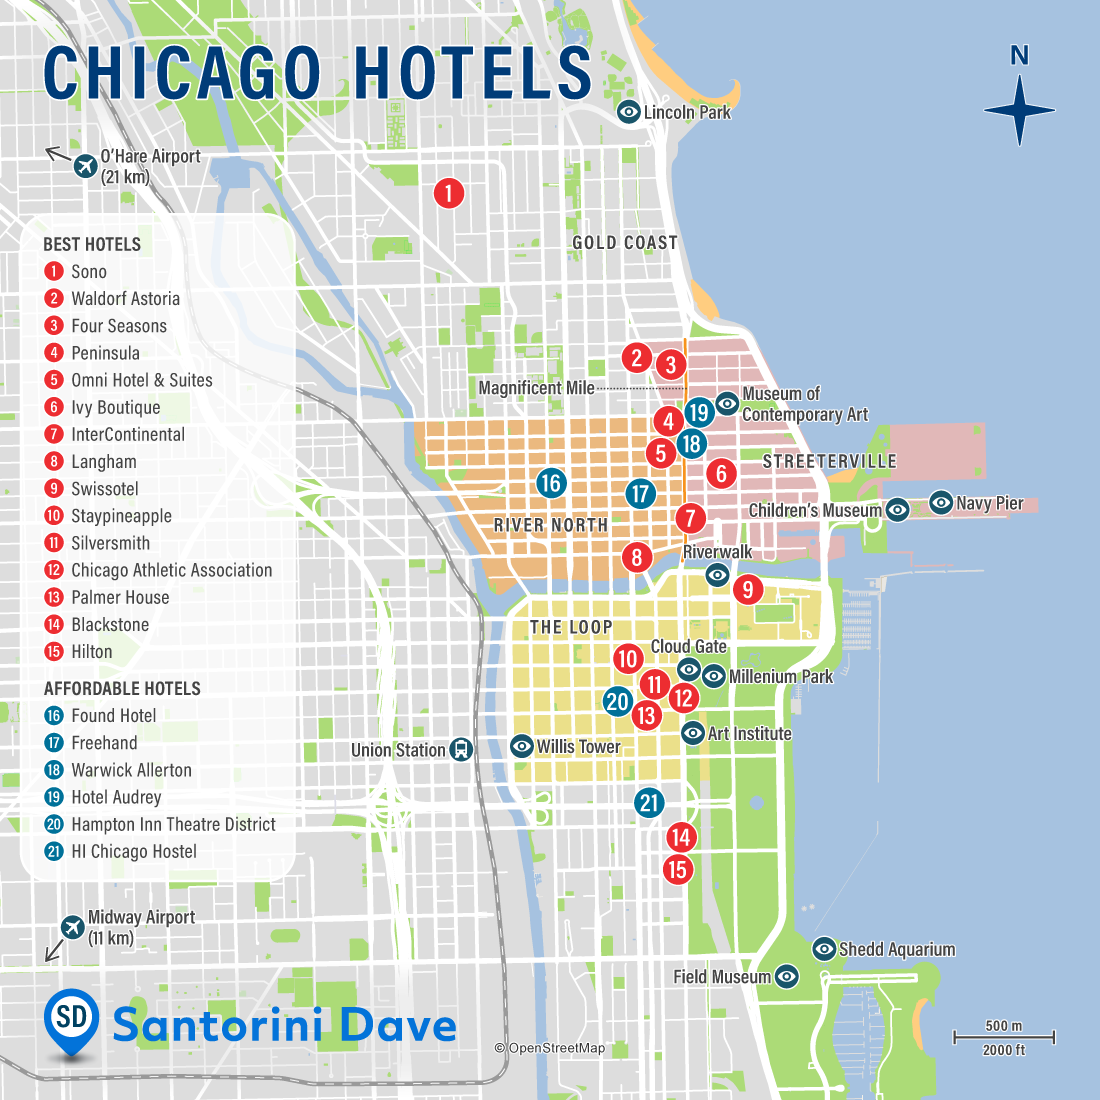 Map of Chicago Hotels and Neighborhoods.